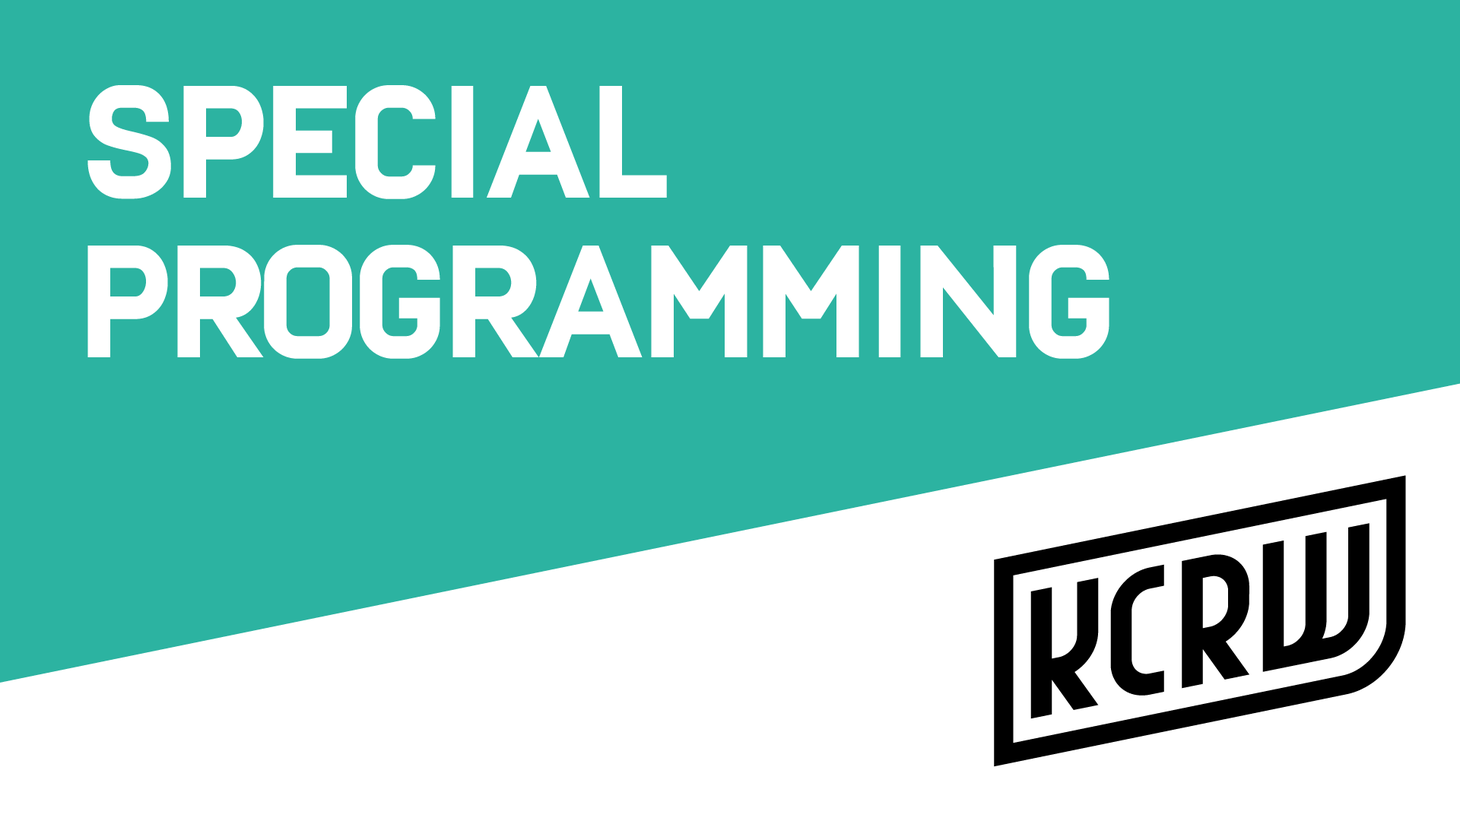 On Tuesday, February 13 through Friday, February 16 (6:30-7:30pm), 89.9 FM KCRW-Santa Monica and KCRW.com will broadcast NPR's daily hour-long wrap-ups of the debate in the House of Representatives on a resolution objecting to President Bush's proposed troop build up in Iraq.  In addition, full live coverage of the House debate will be heard beginning at 6am Pacific Time until completion at  KCRWworldnews.com .